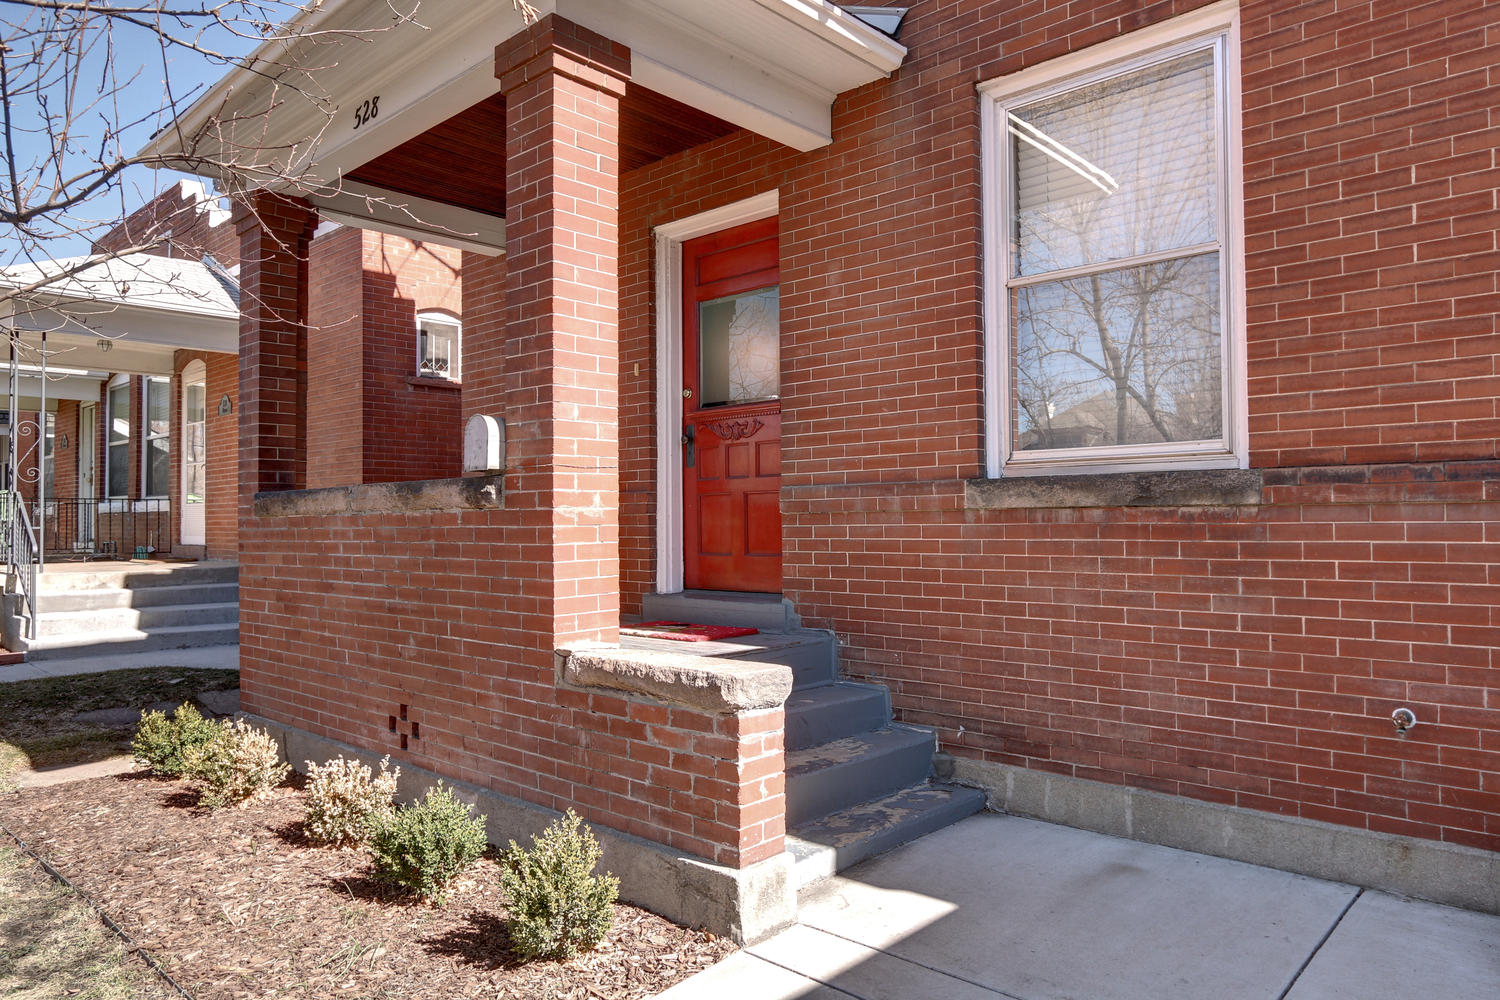 2-528-marion-st-denver-co-80218-large-002-3-hotshotpros-802e-1500x1000-72dpi